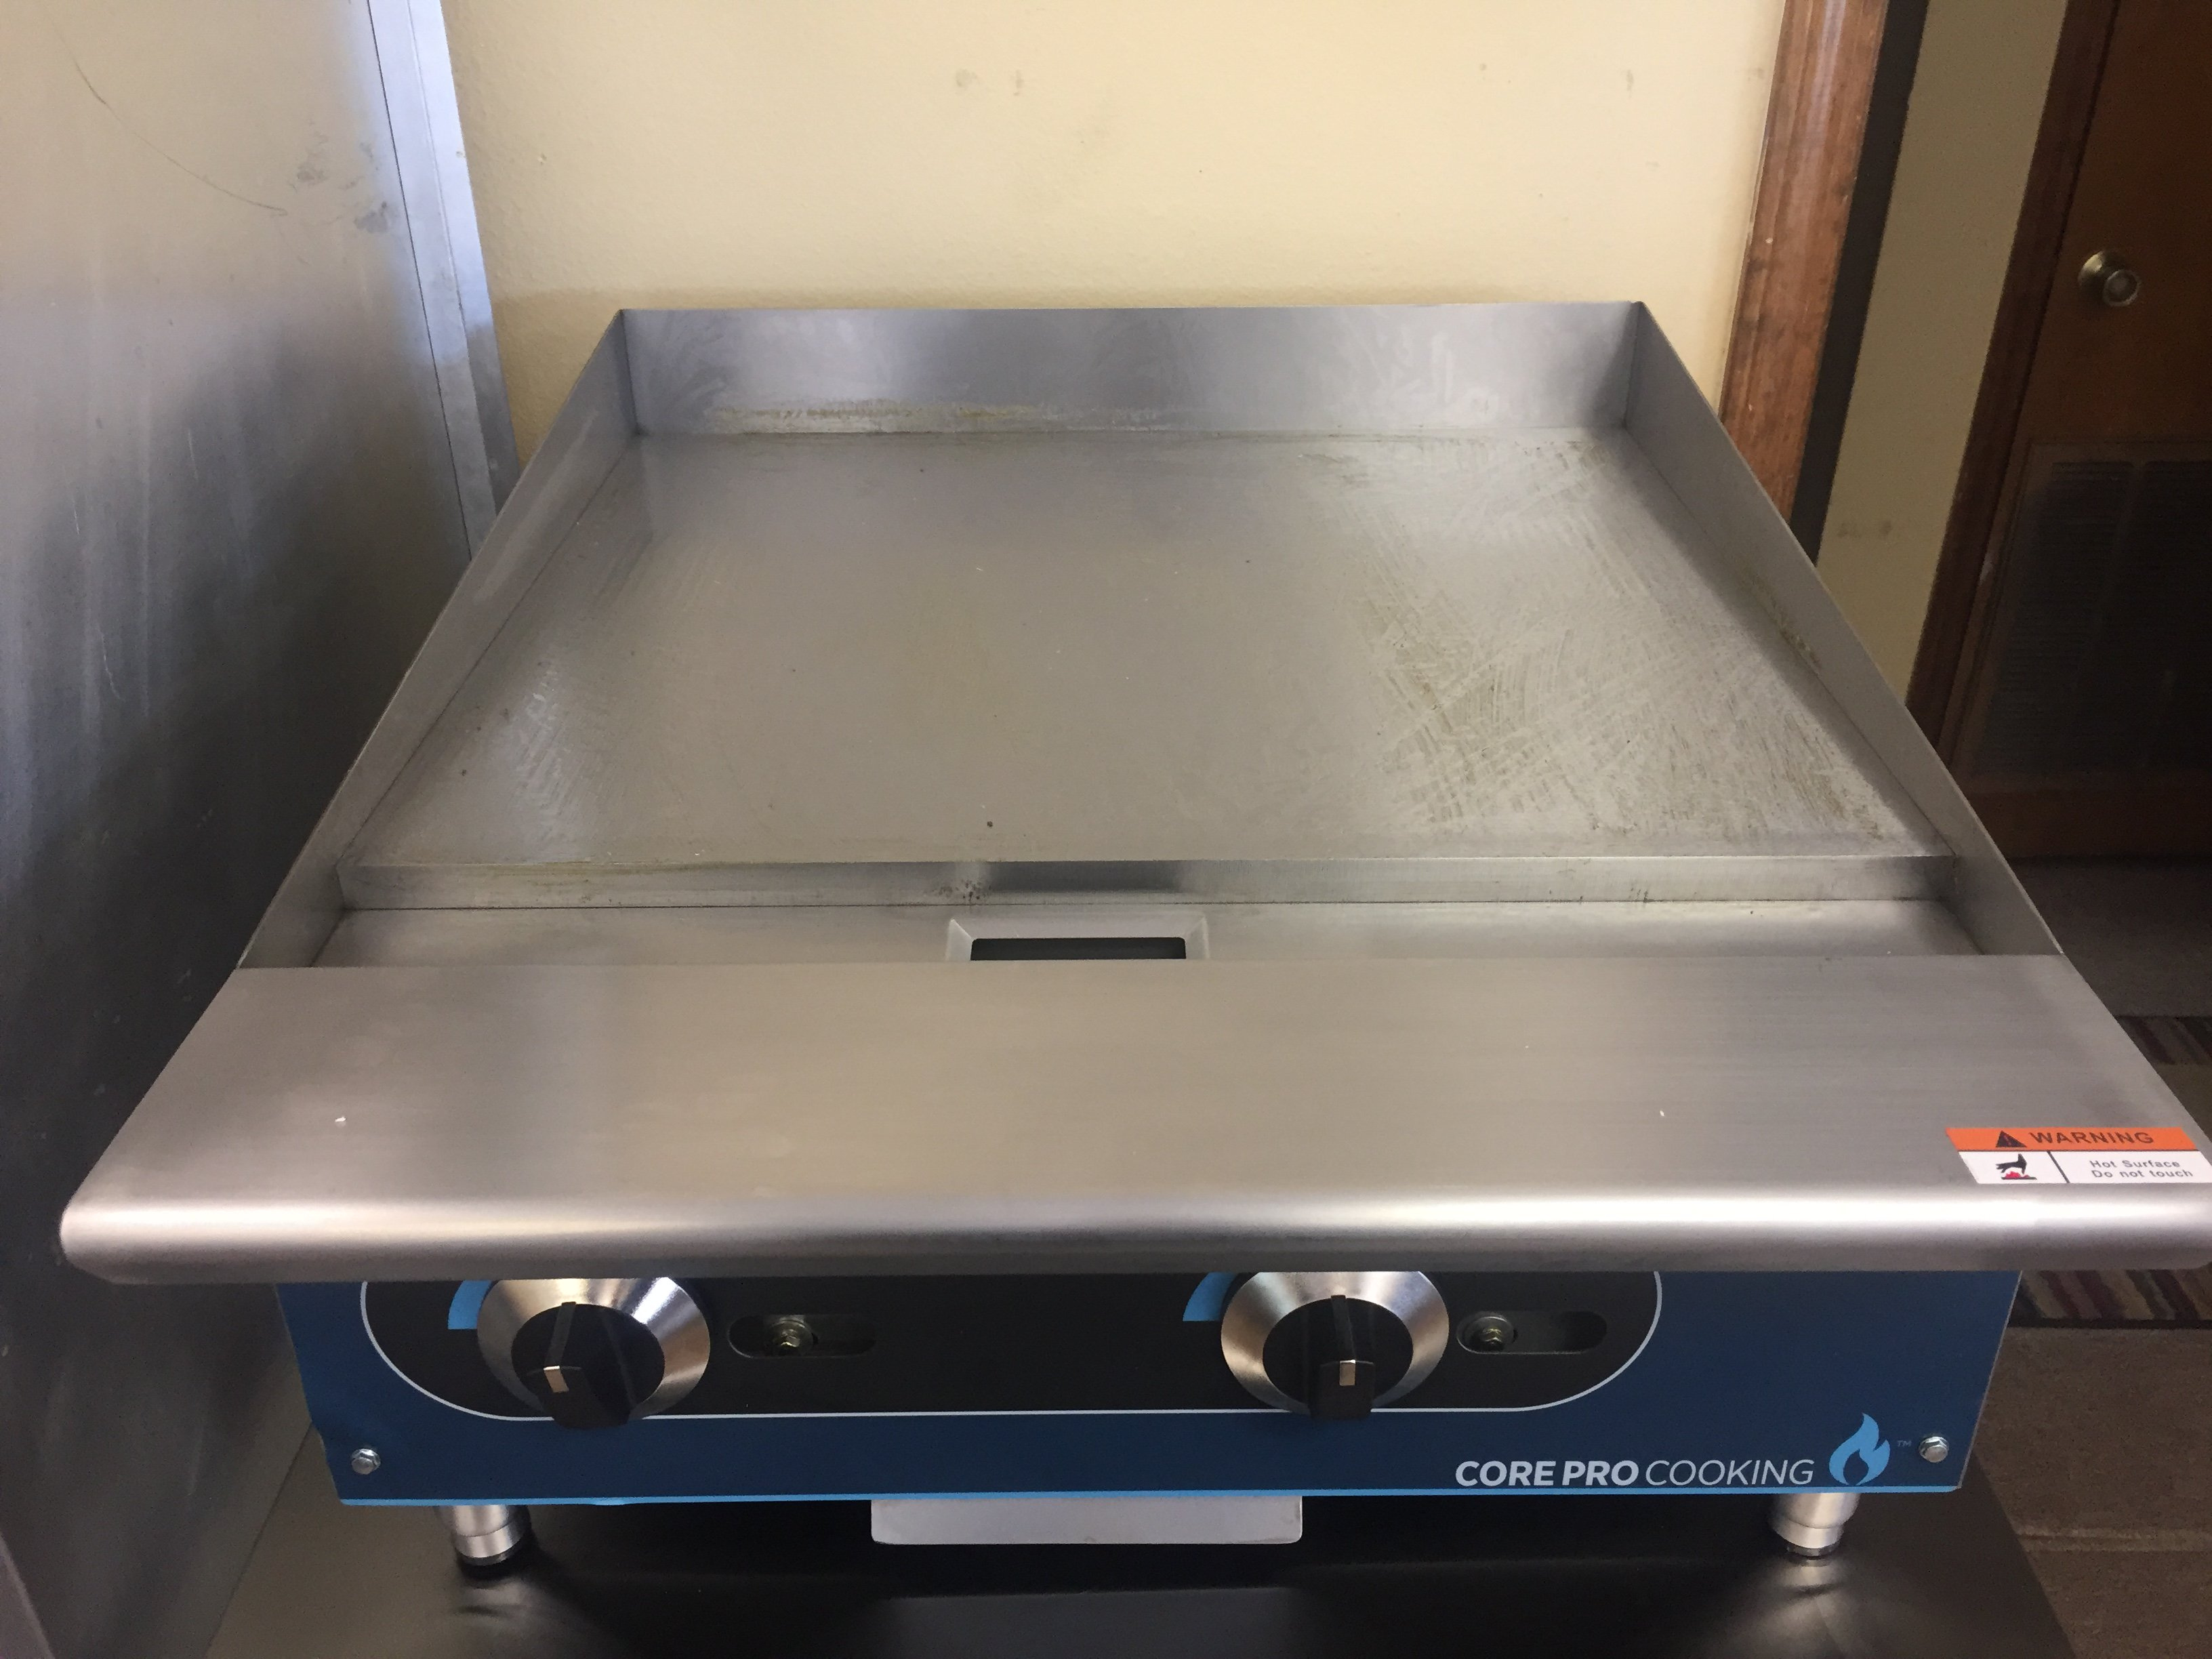 New Cor Pro Cooking Equipment   Manual Griddle Starting @ $620 and Up  Model # CP-G24-M Model # CP-G36-M Model # CP-G48-M Model # CP-G60-M